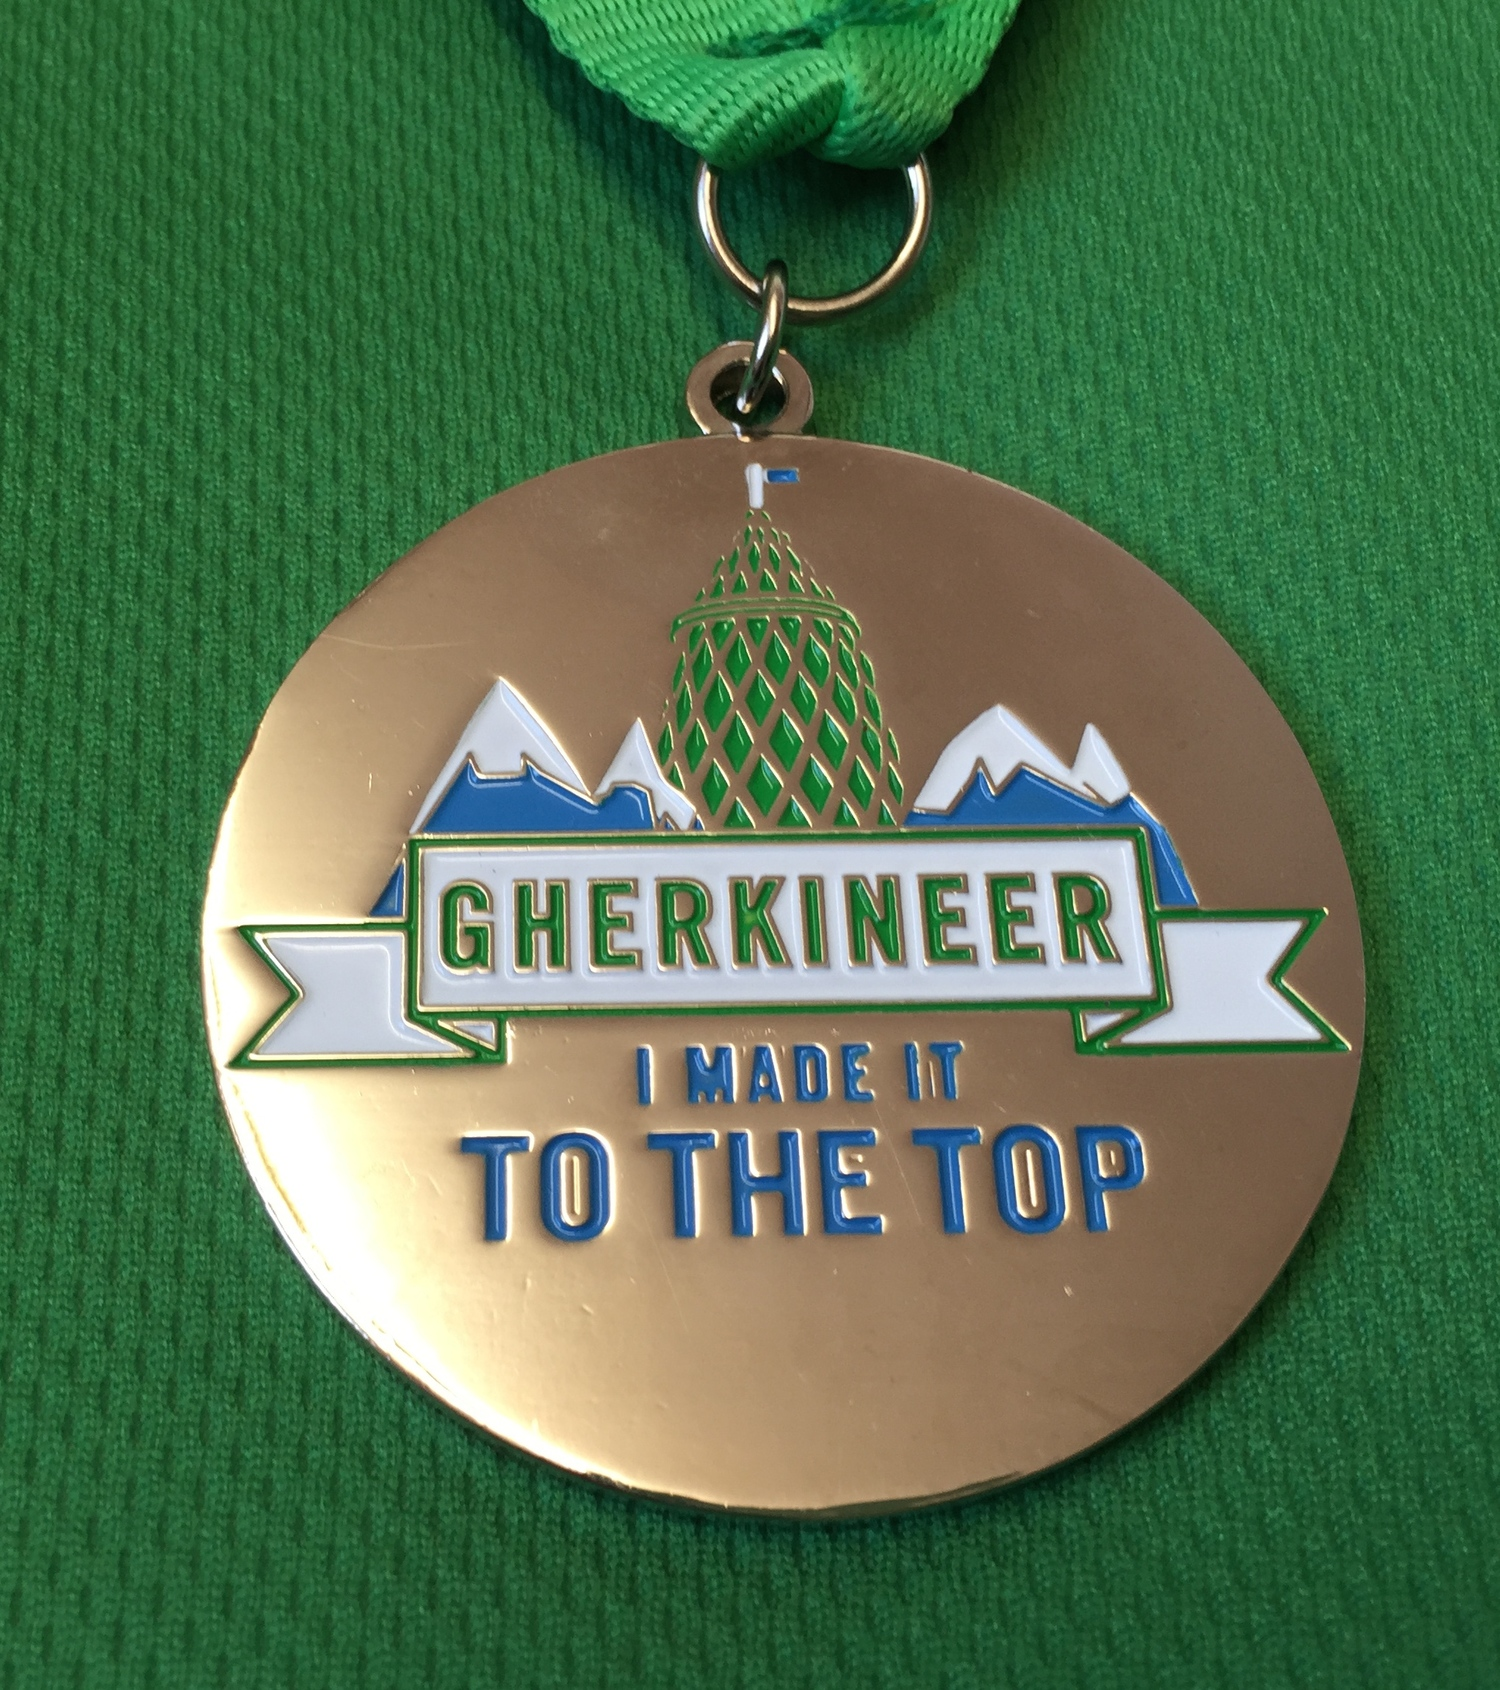 The Gherkin Challenge Medal, awarded to everyone who reached the top.